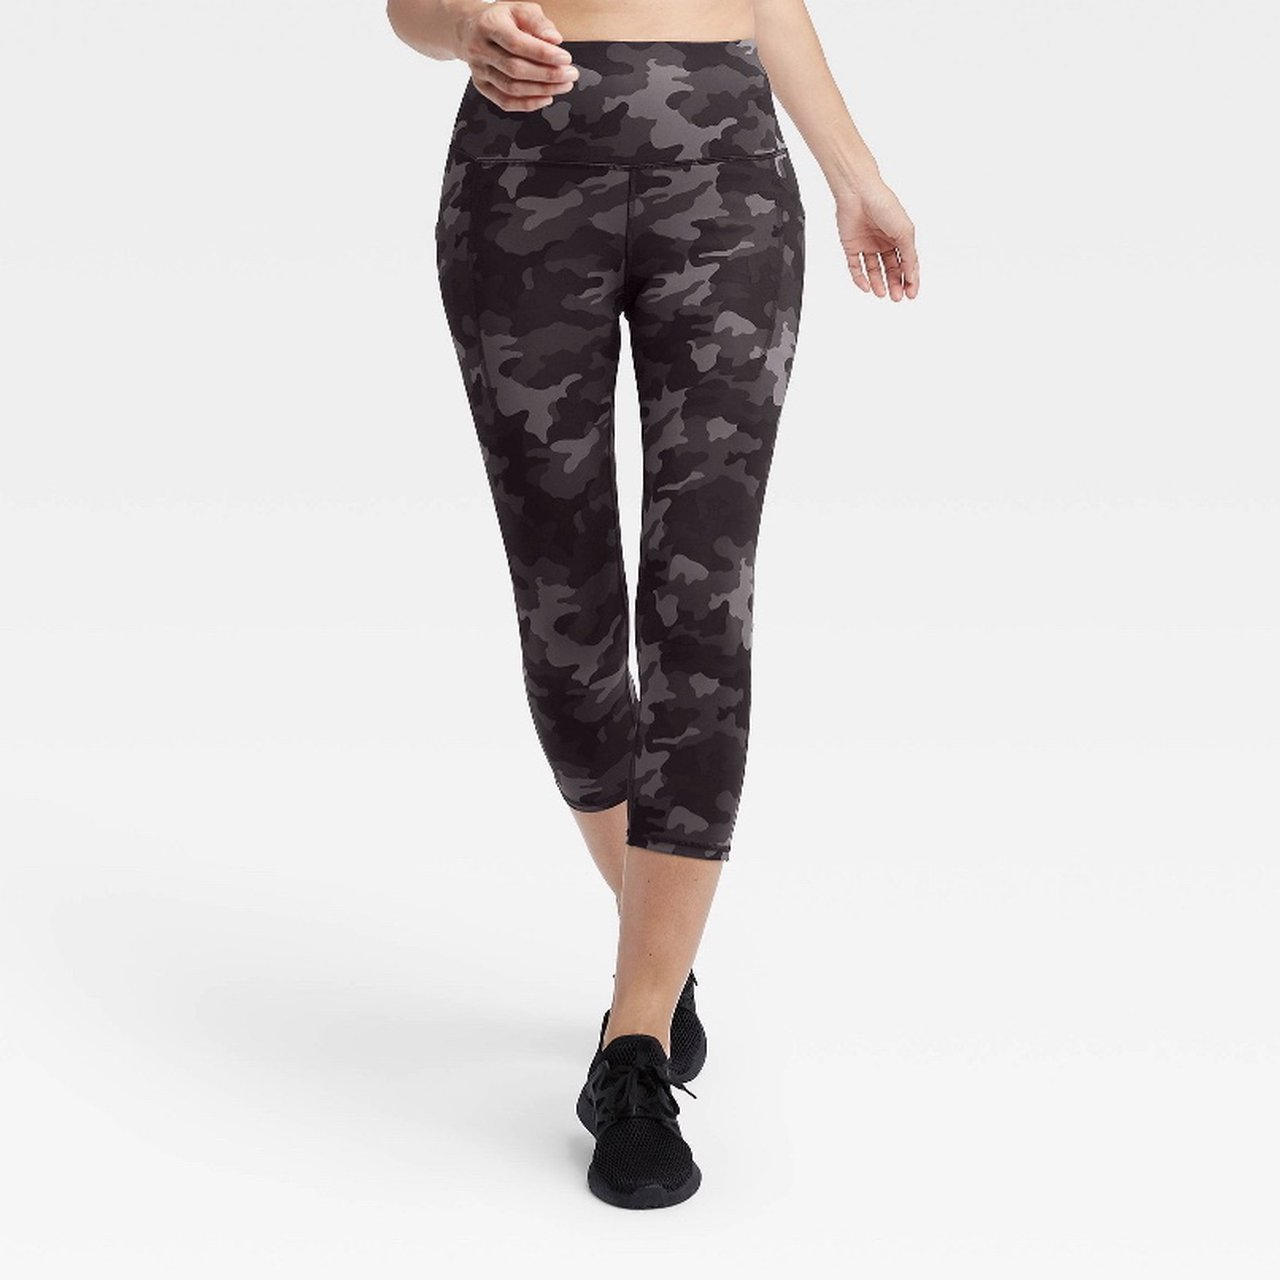 Lululemon And Alo Camo Legging Dupes In Perfect Depop